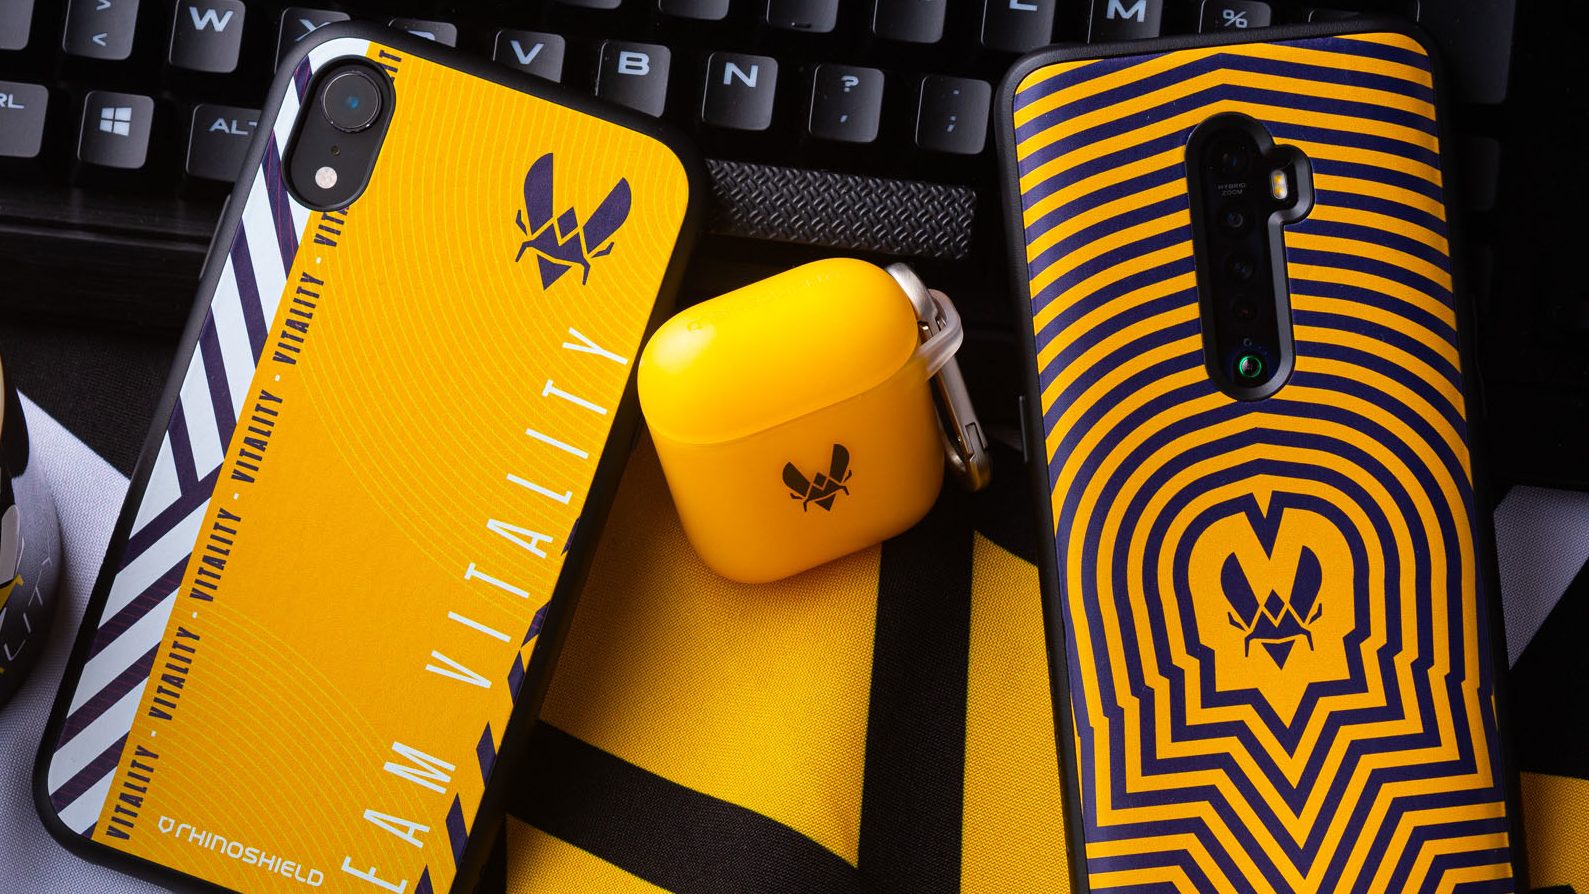 RhinoShield to produce Team Vitality phone and gadget cases